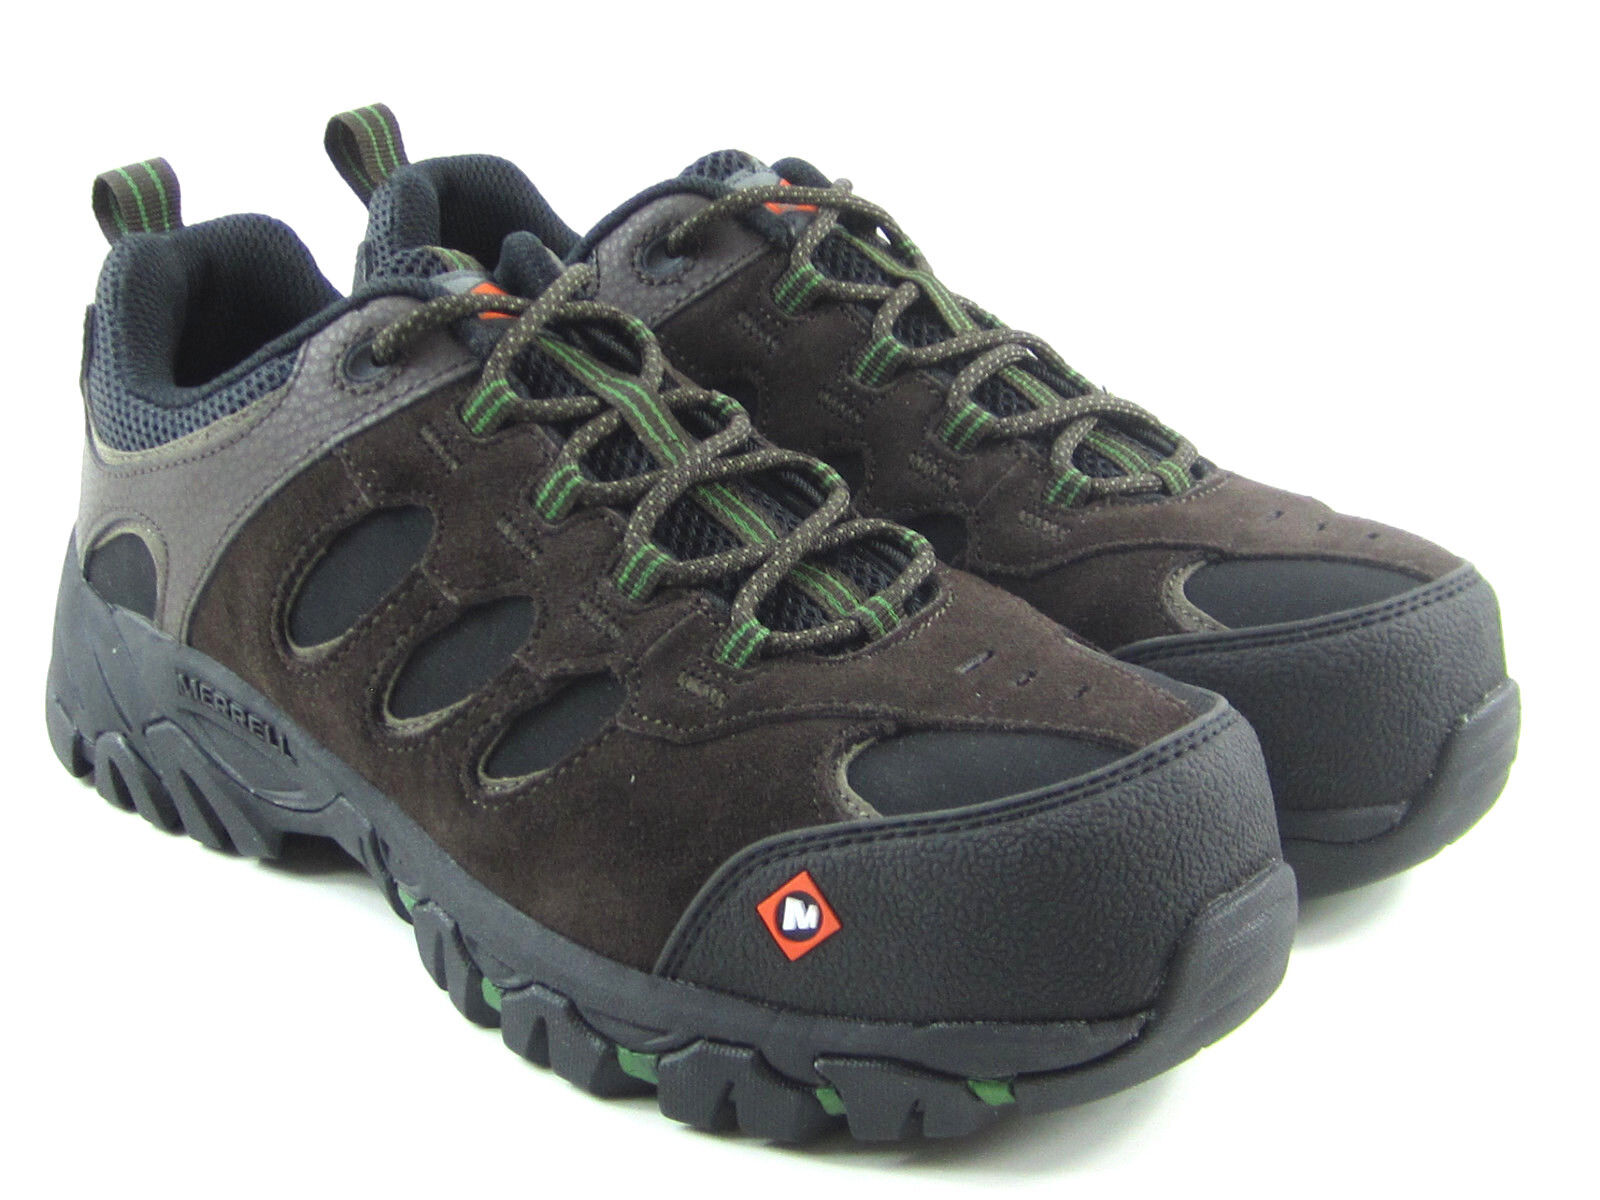 MERRELL Ridgepass Men's Brown Leather Work shoes Composite  Toe Size 7.5 J15859  welcome to choose